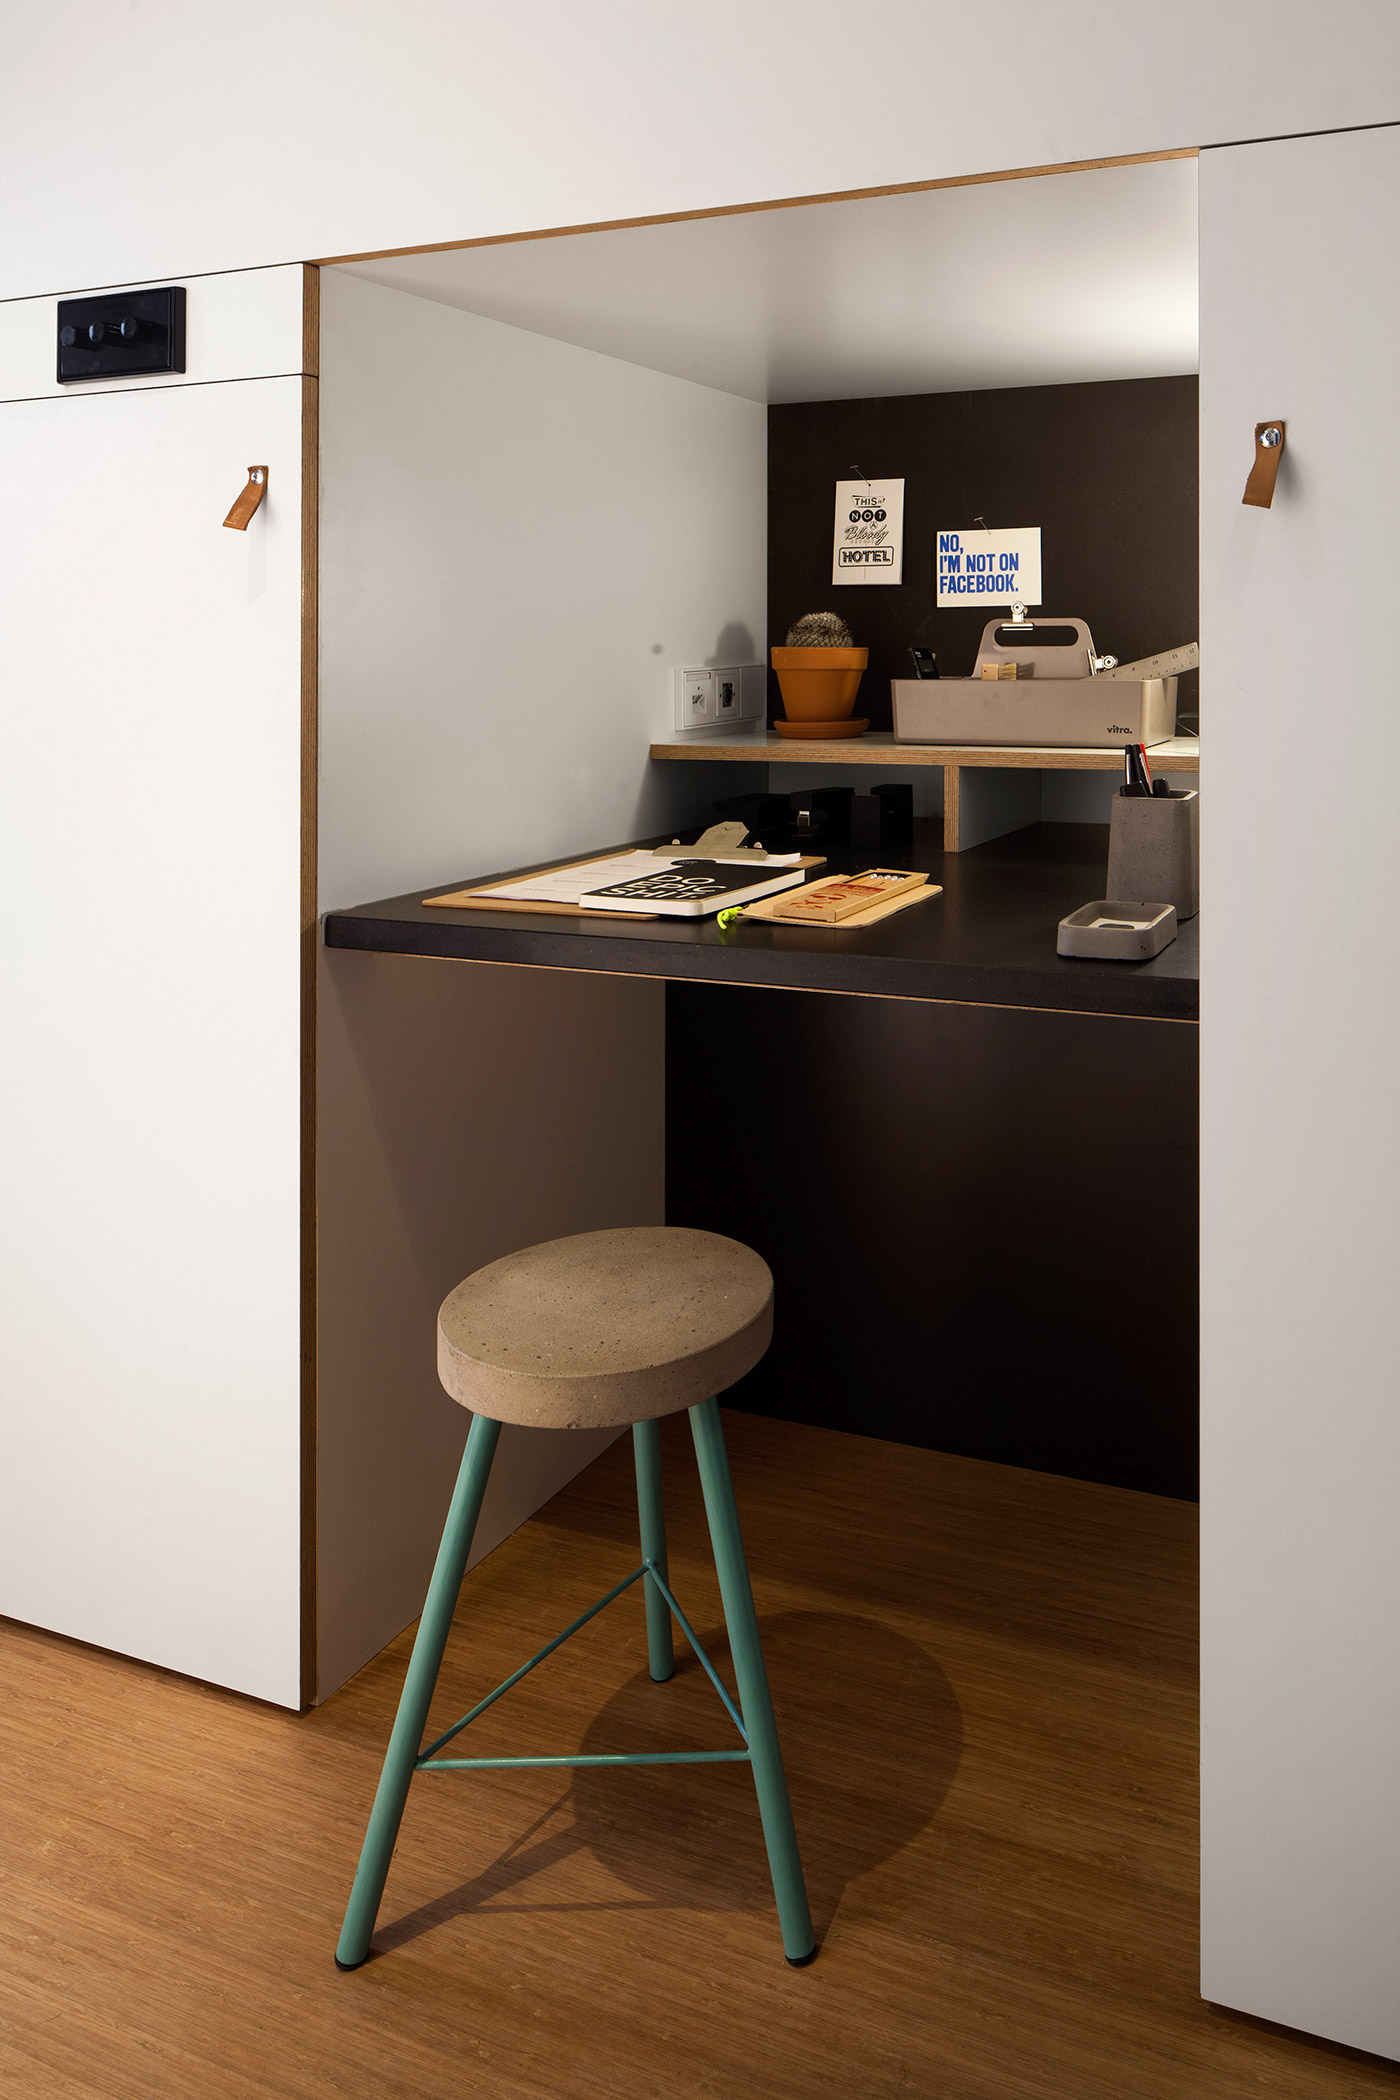 Cute Work Nook - 4 awesome small studio apartments with lofted beds